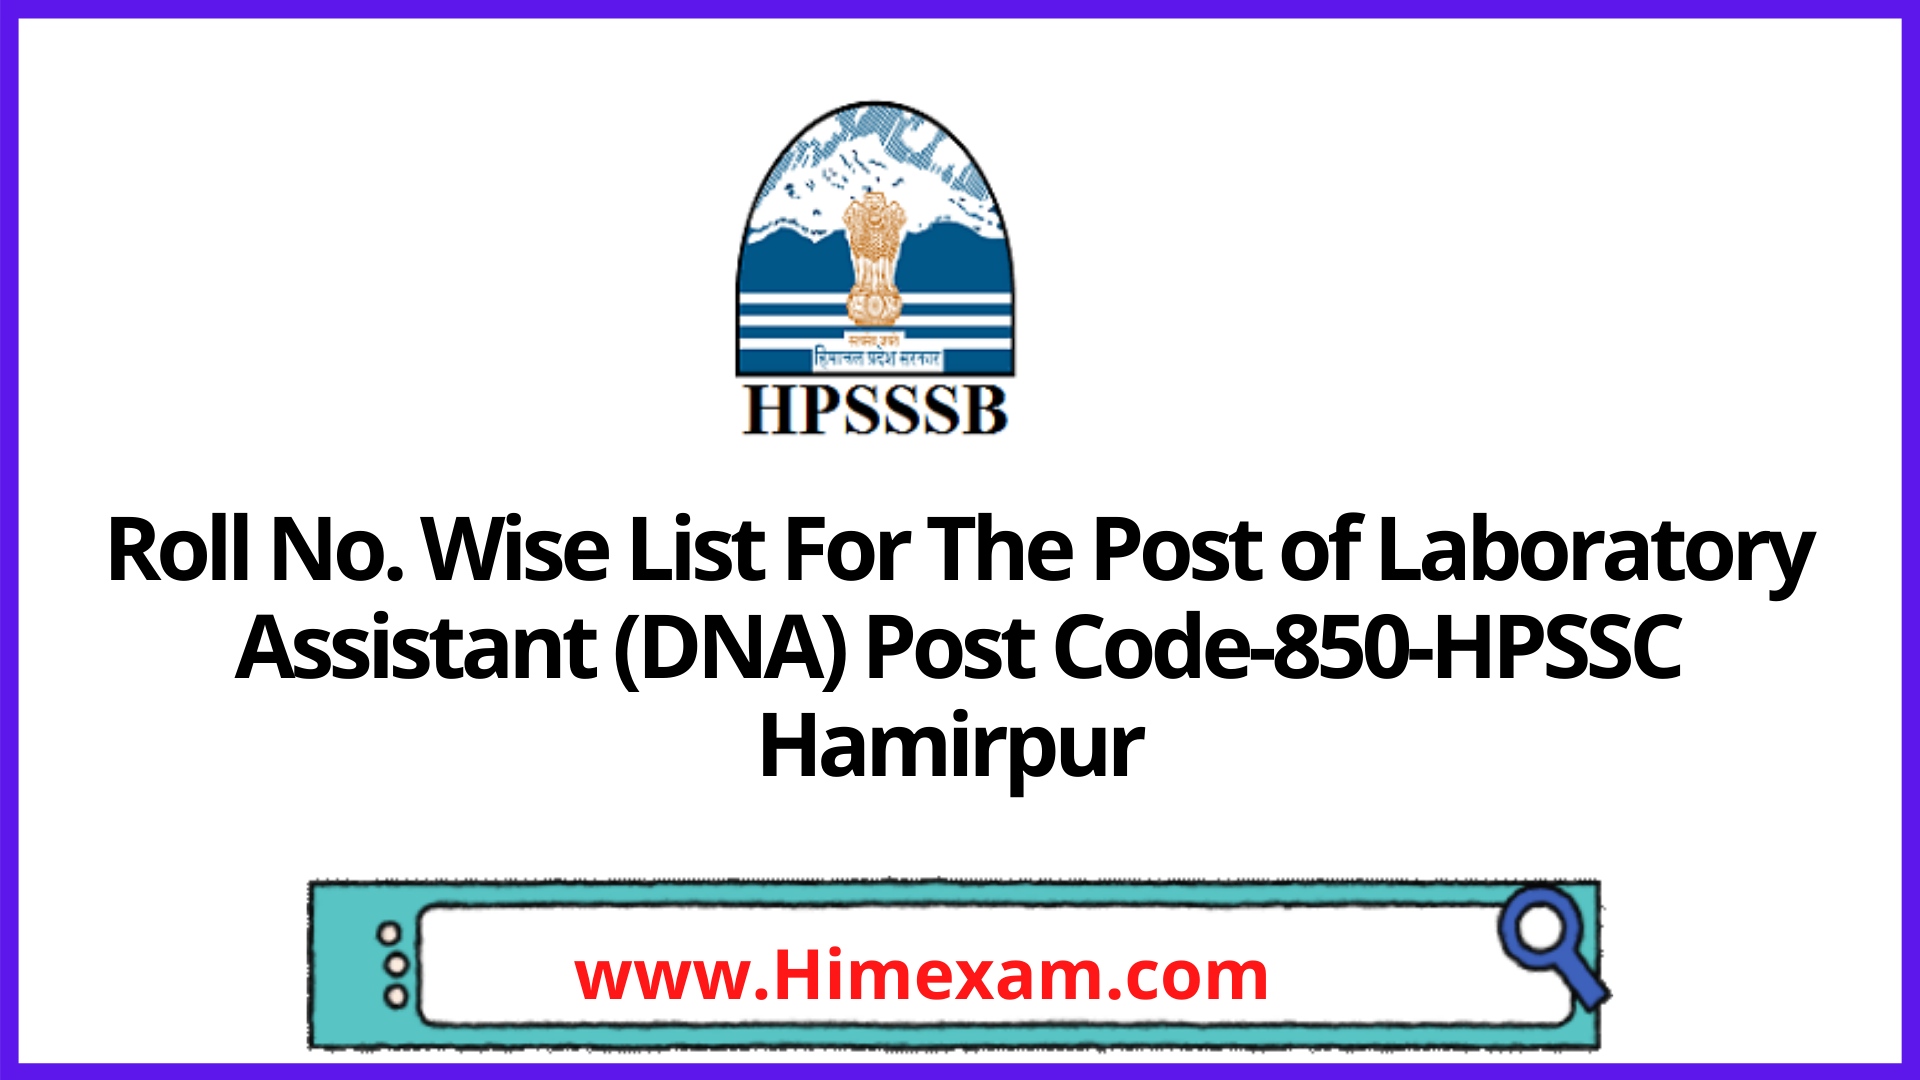 Roll No. Wise List For The Post of Laboratory Assistant (DNA) Post Code-850-HPSSC Hamirpur